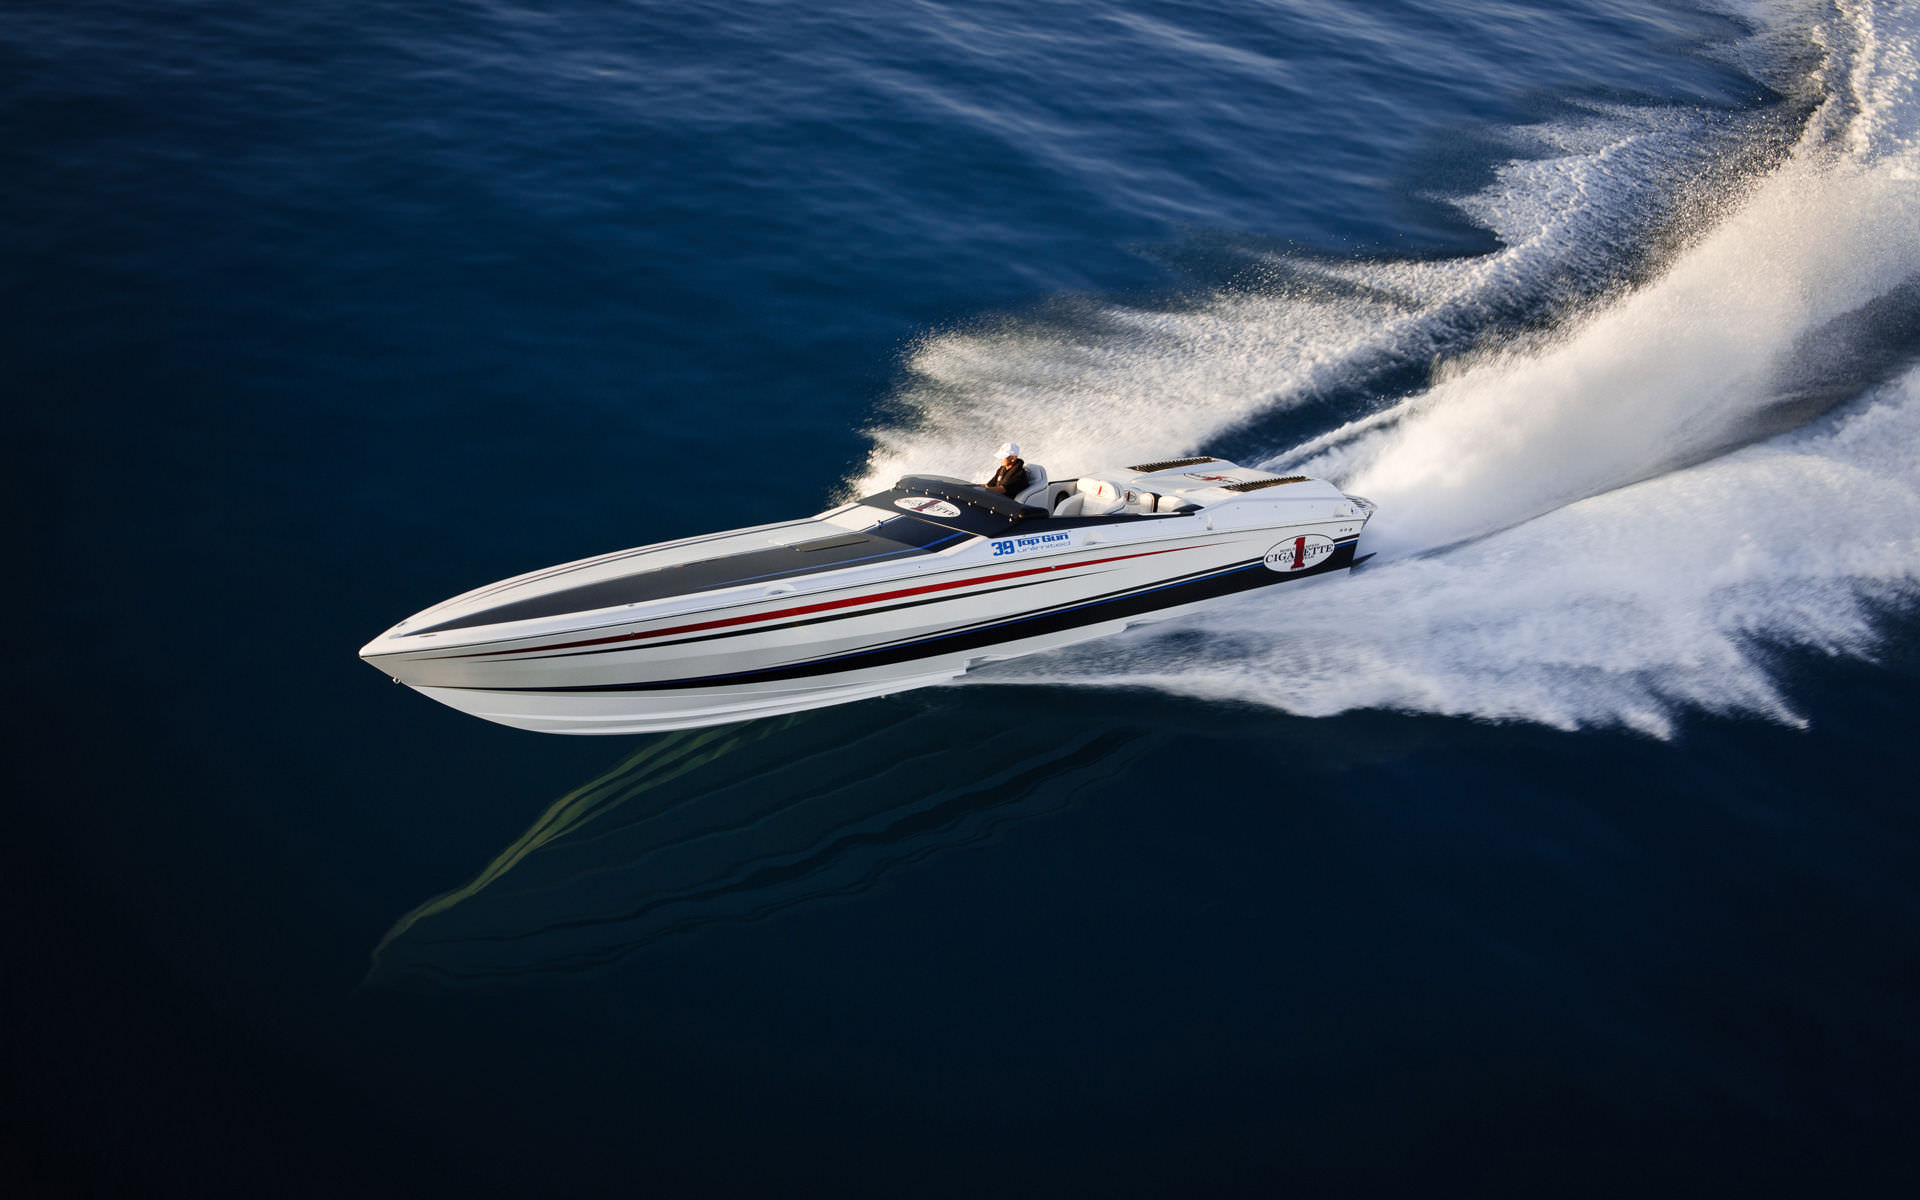 speed boat desktop wallpaper 50998